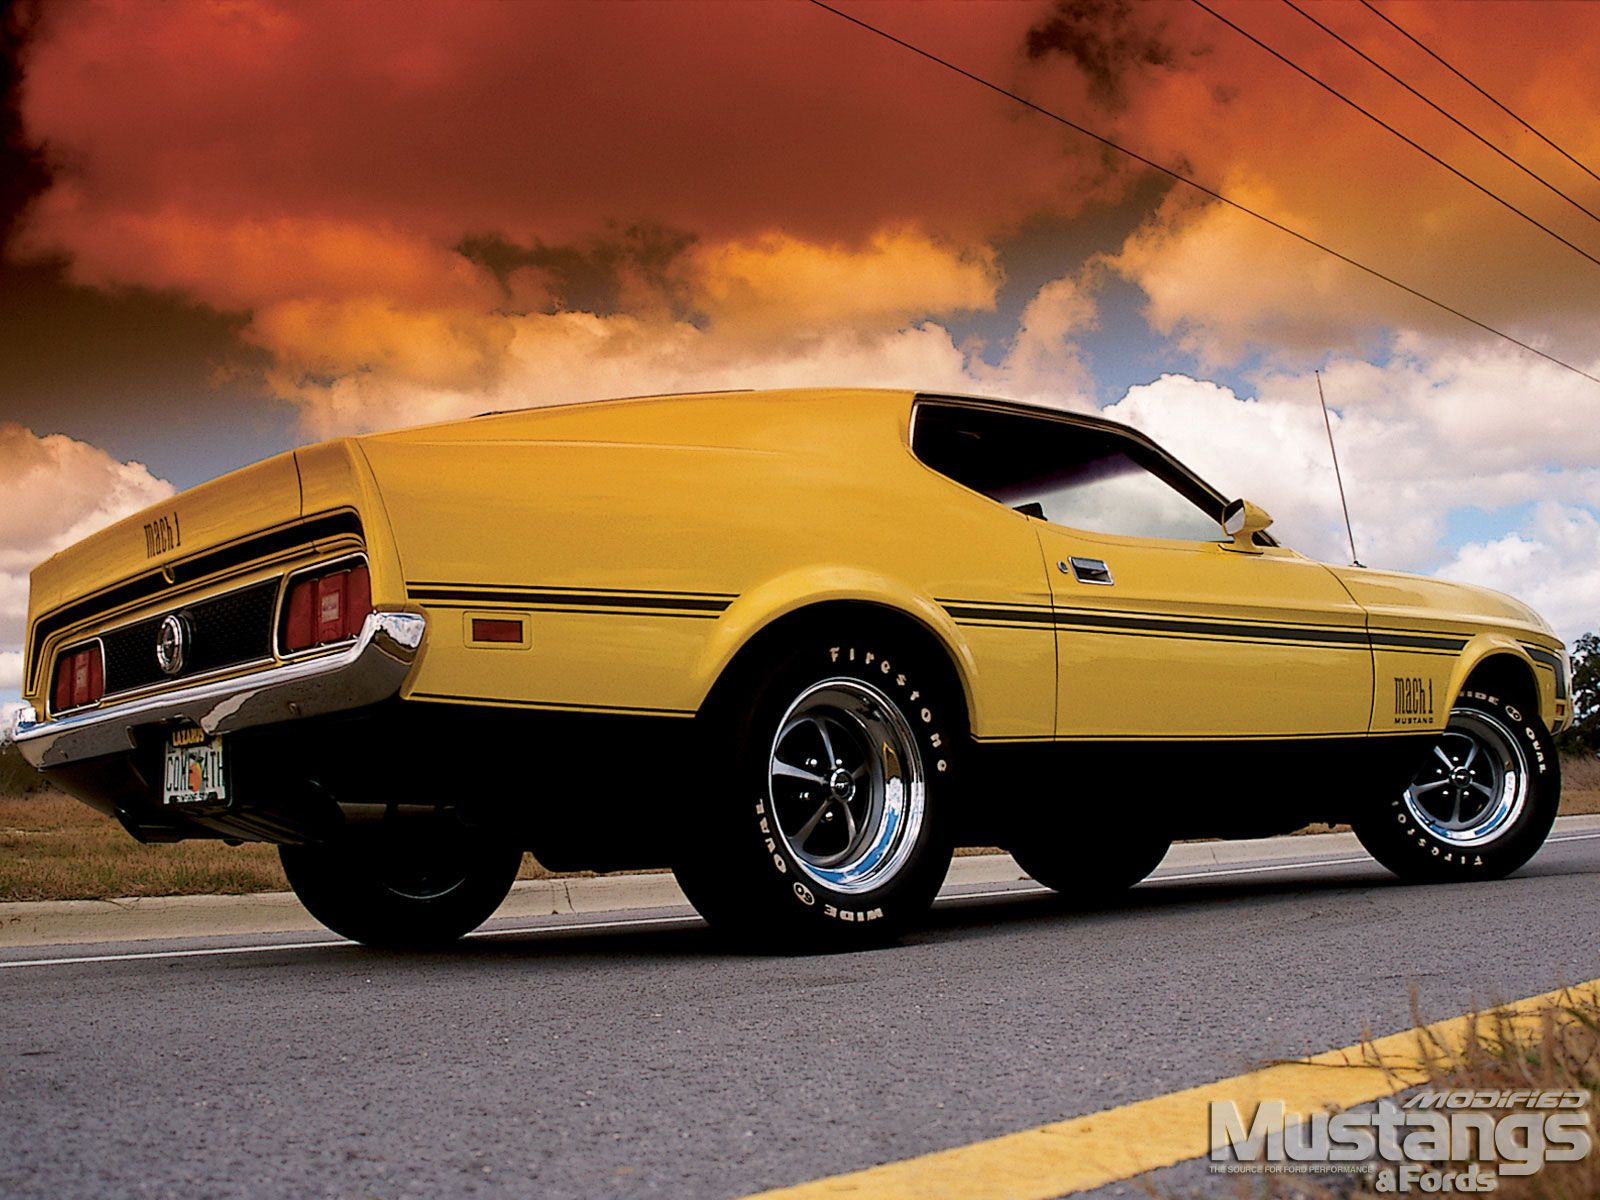 1972 Mustang Mach 1 1972 Ford Mustang Mach 1 Right Rear